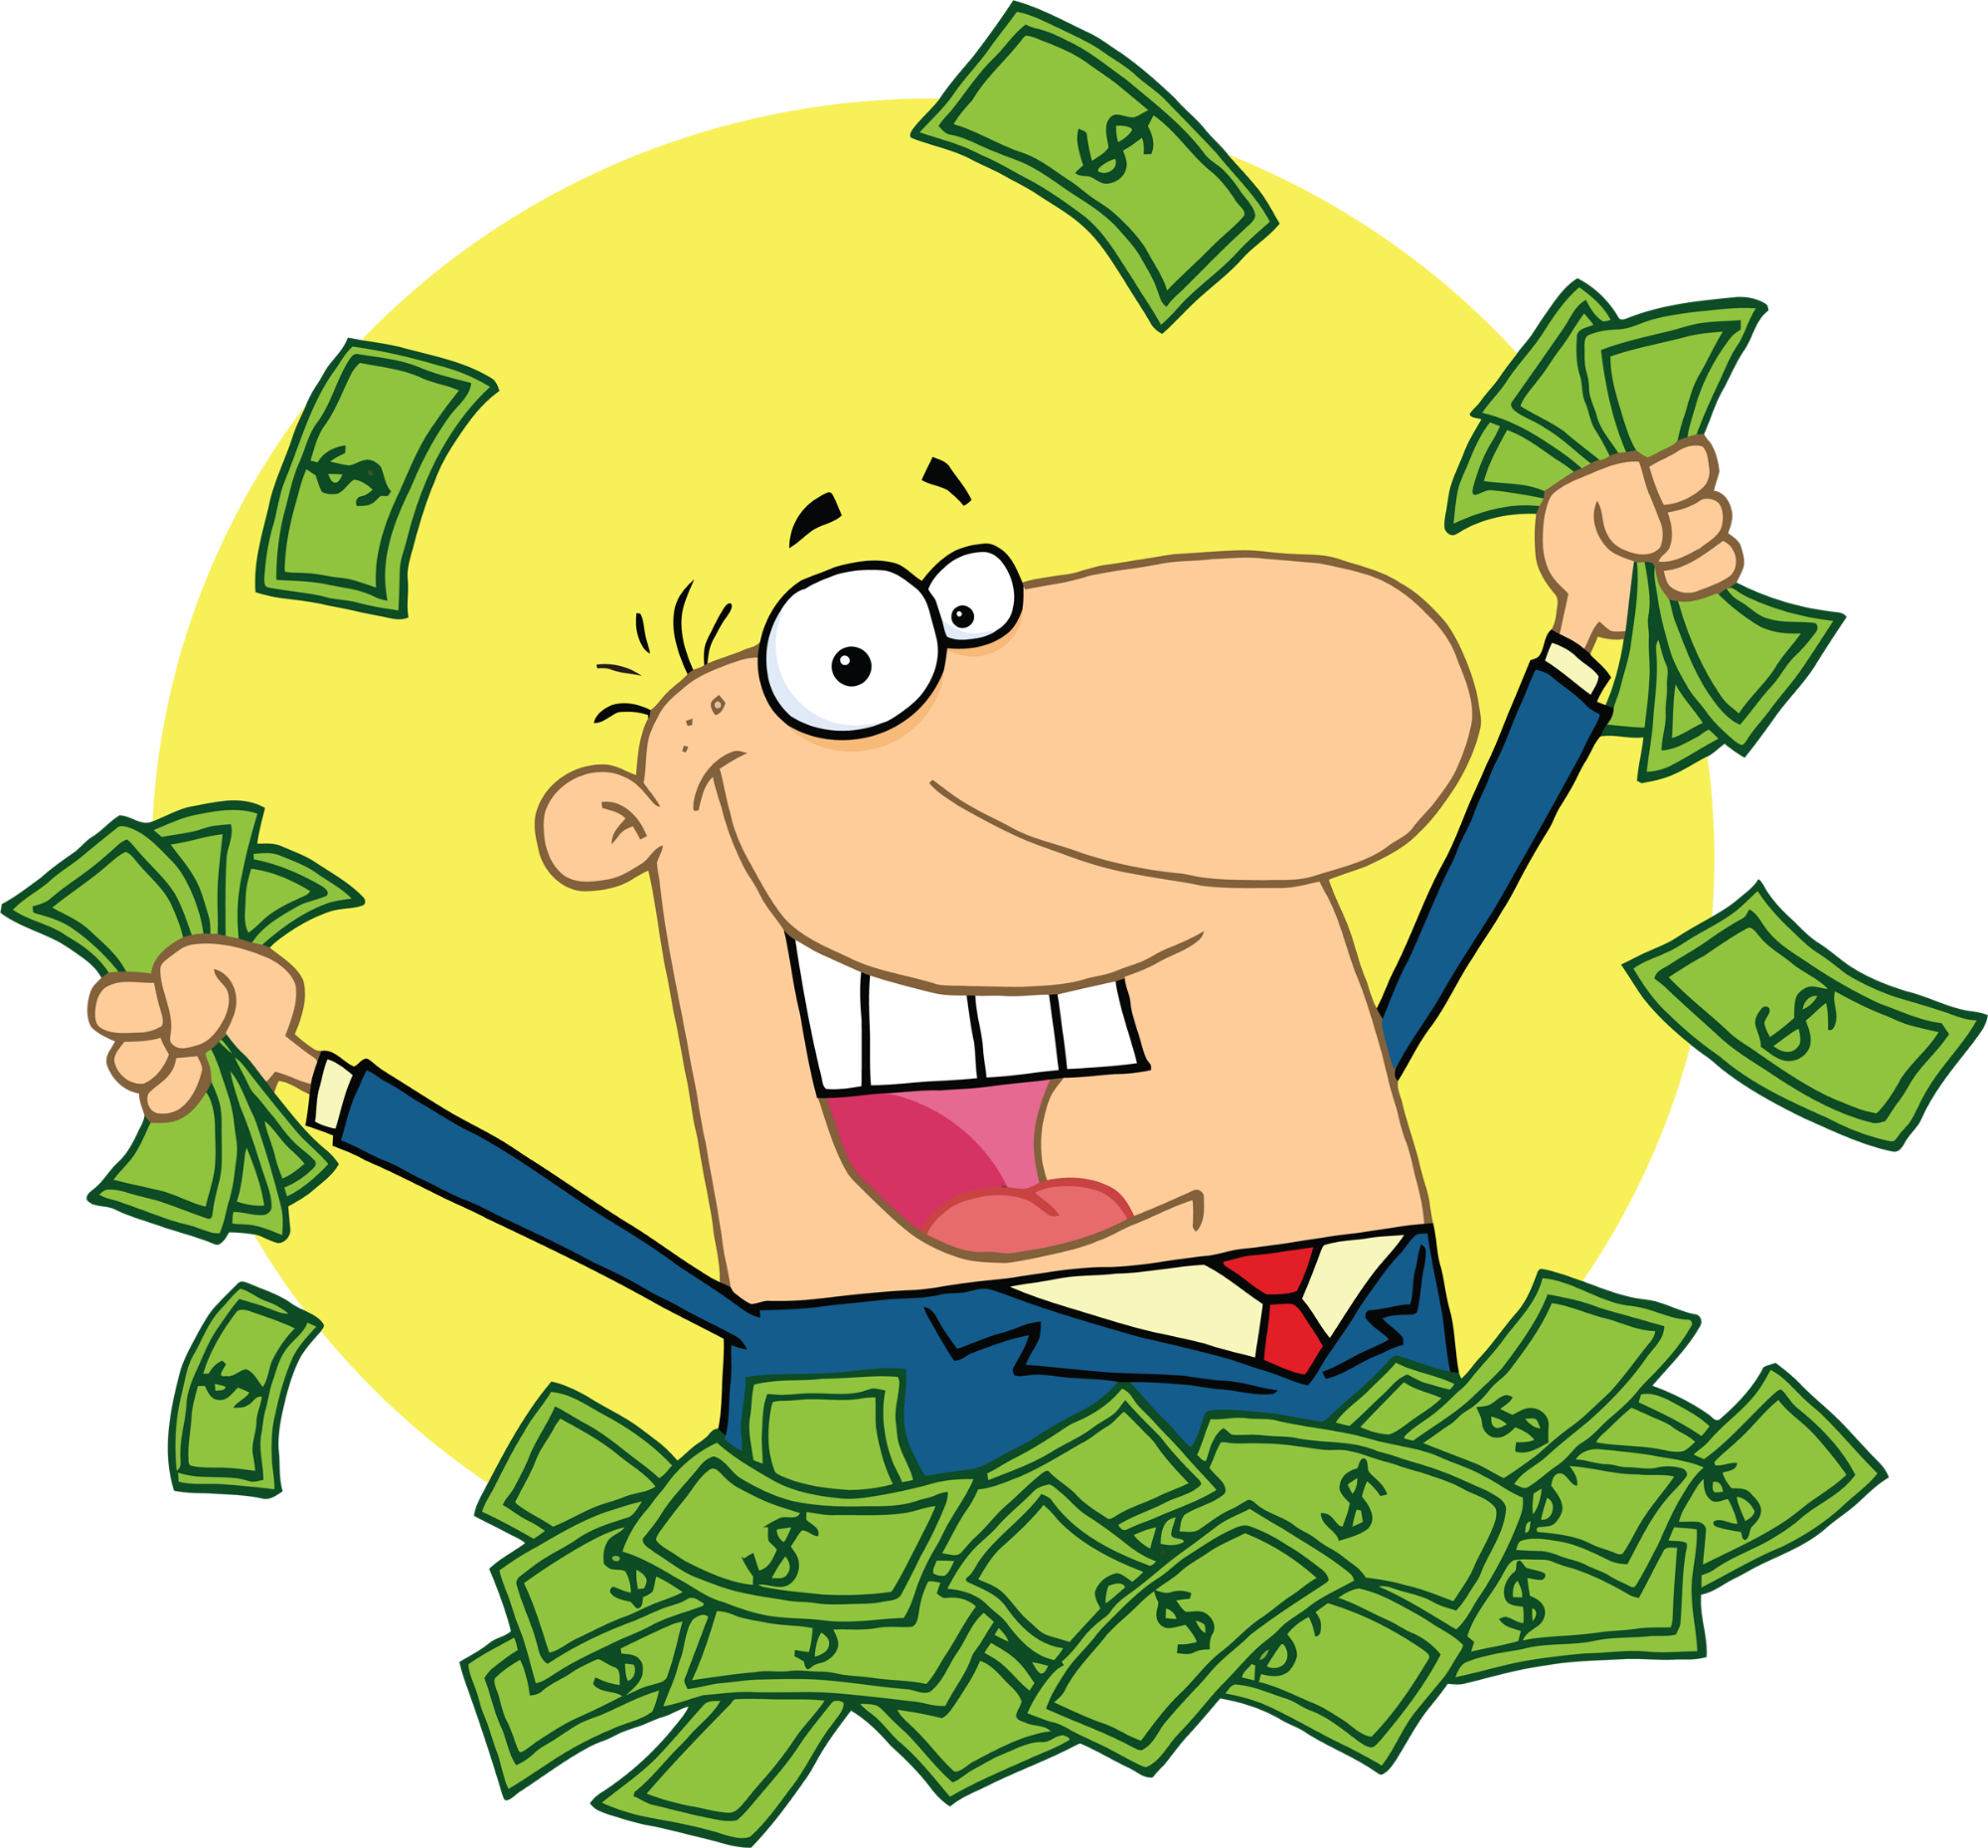 Money rich politician cartoon clipart freeuse library I won Kshs.250,000 – Insights of Mutuku freeuse library